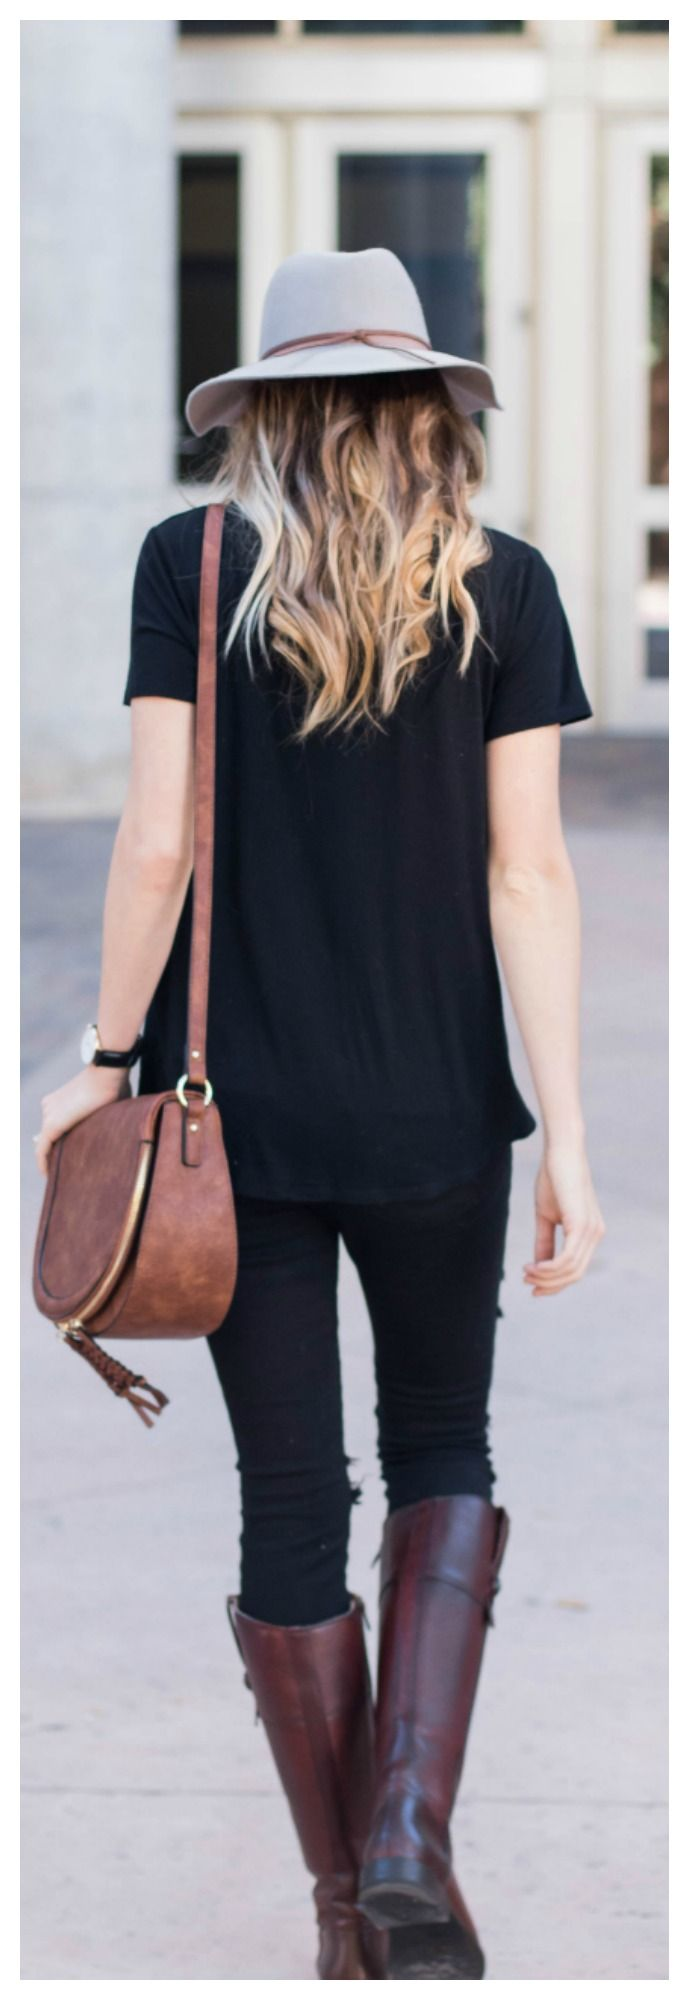 The perfect Fall outfit // Fedora Hat & Riding Boots // Distressed Denim and a Comfy Tee